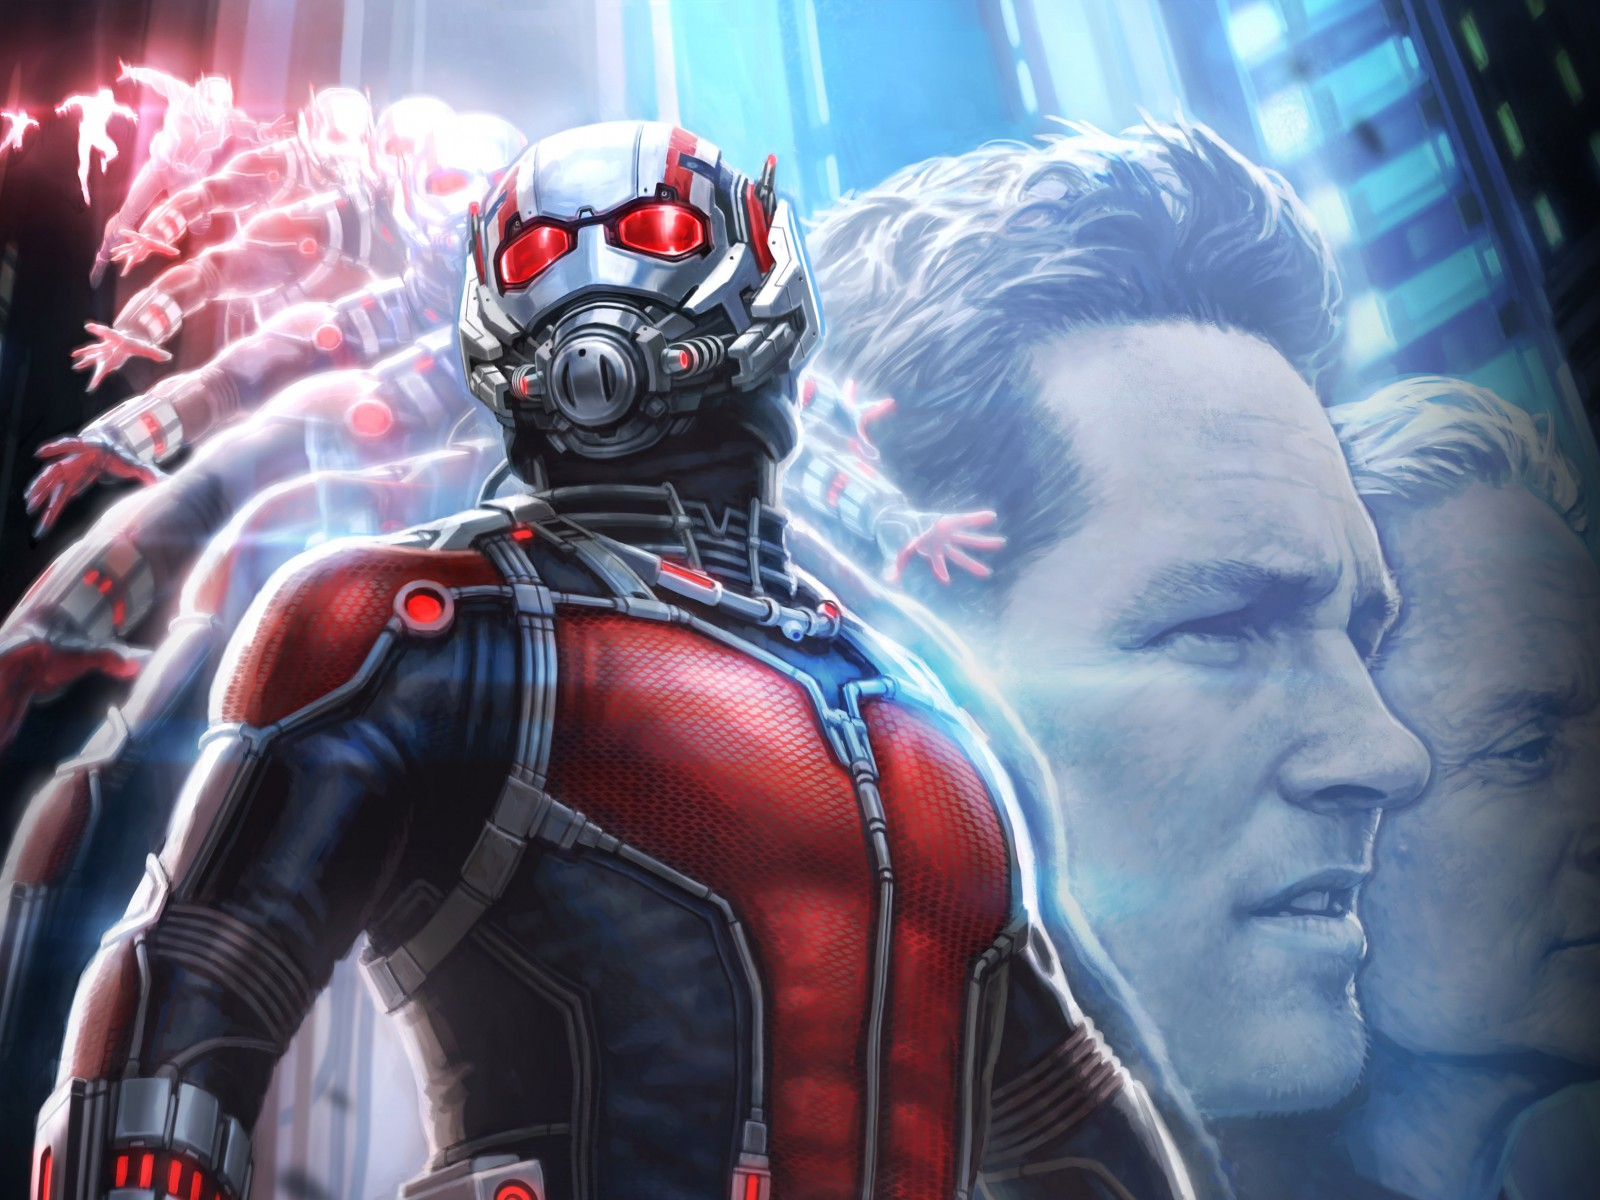 Ant Man Movie 2015 Desktop HD Wallpaper 1600x1200